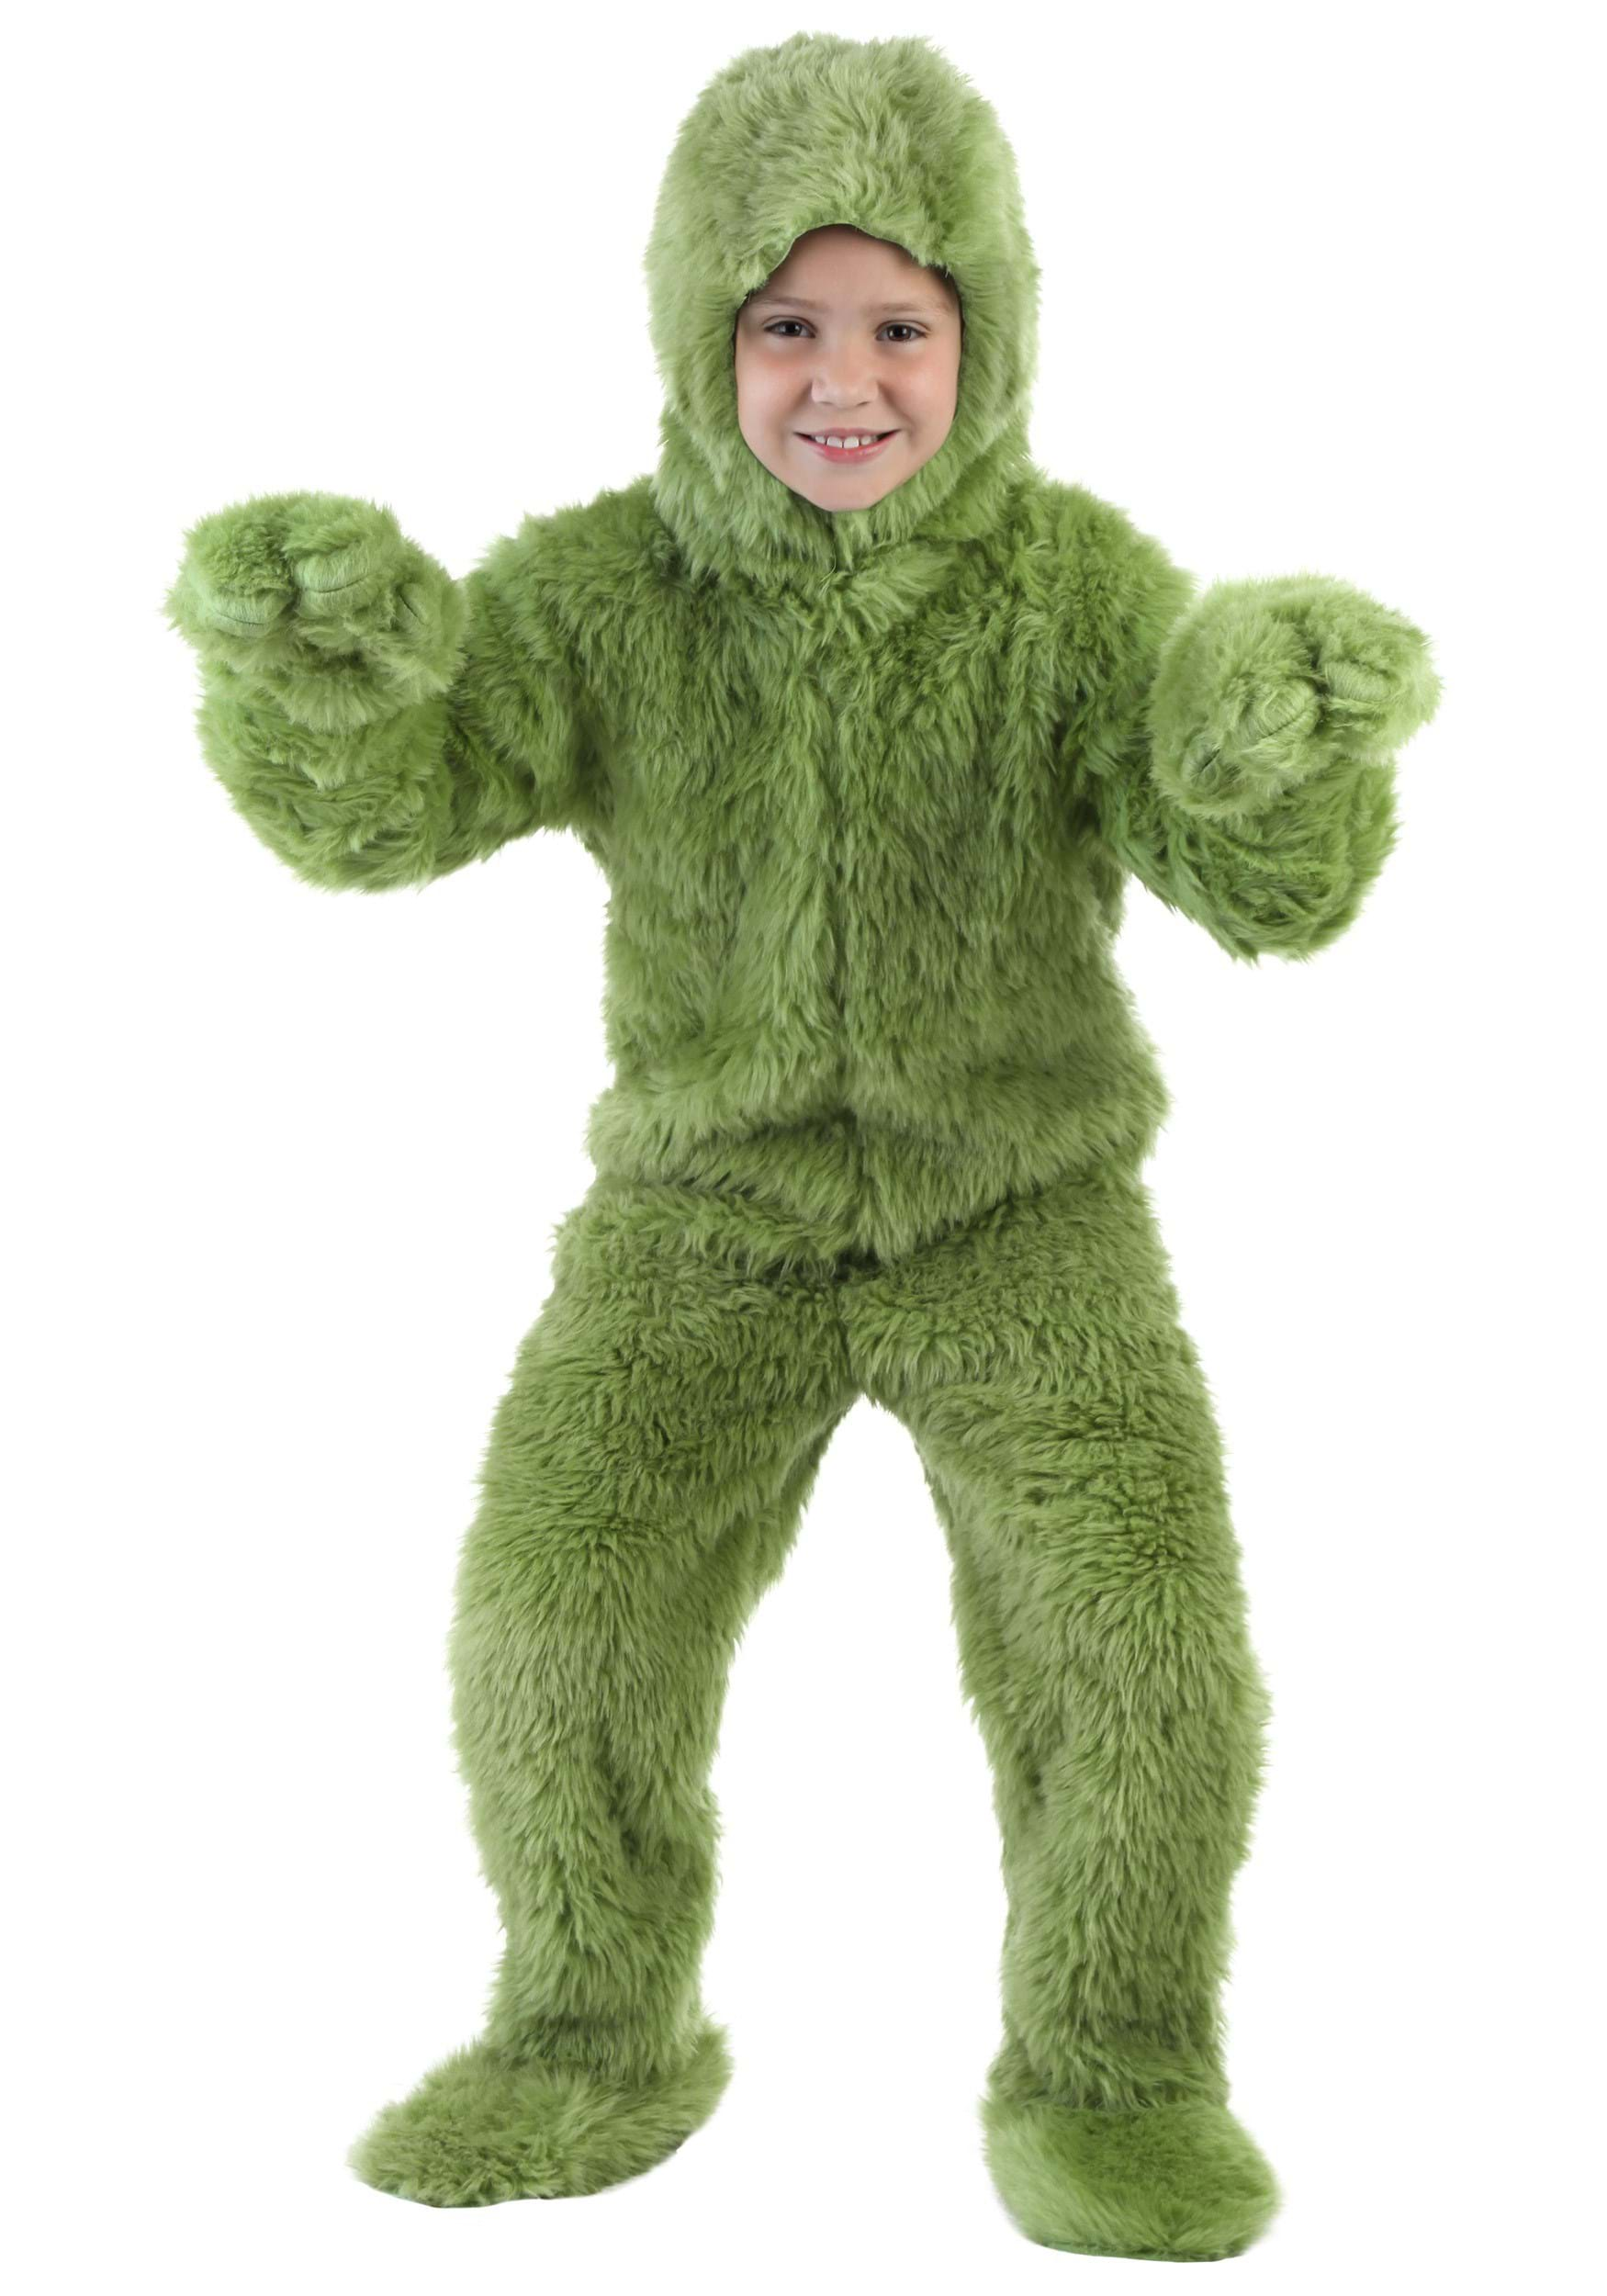 Green Furry Jumpsuit Costume